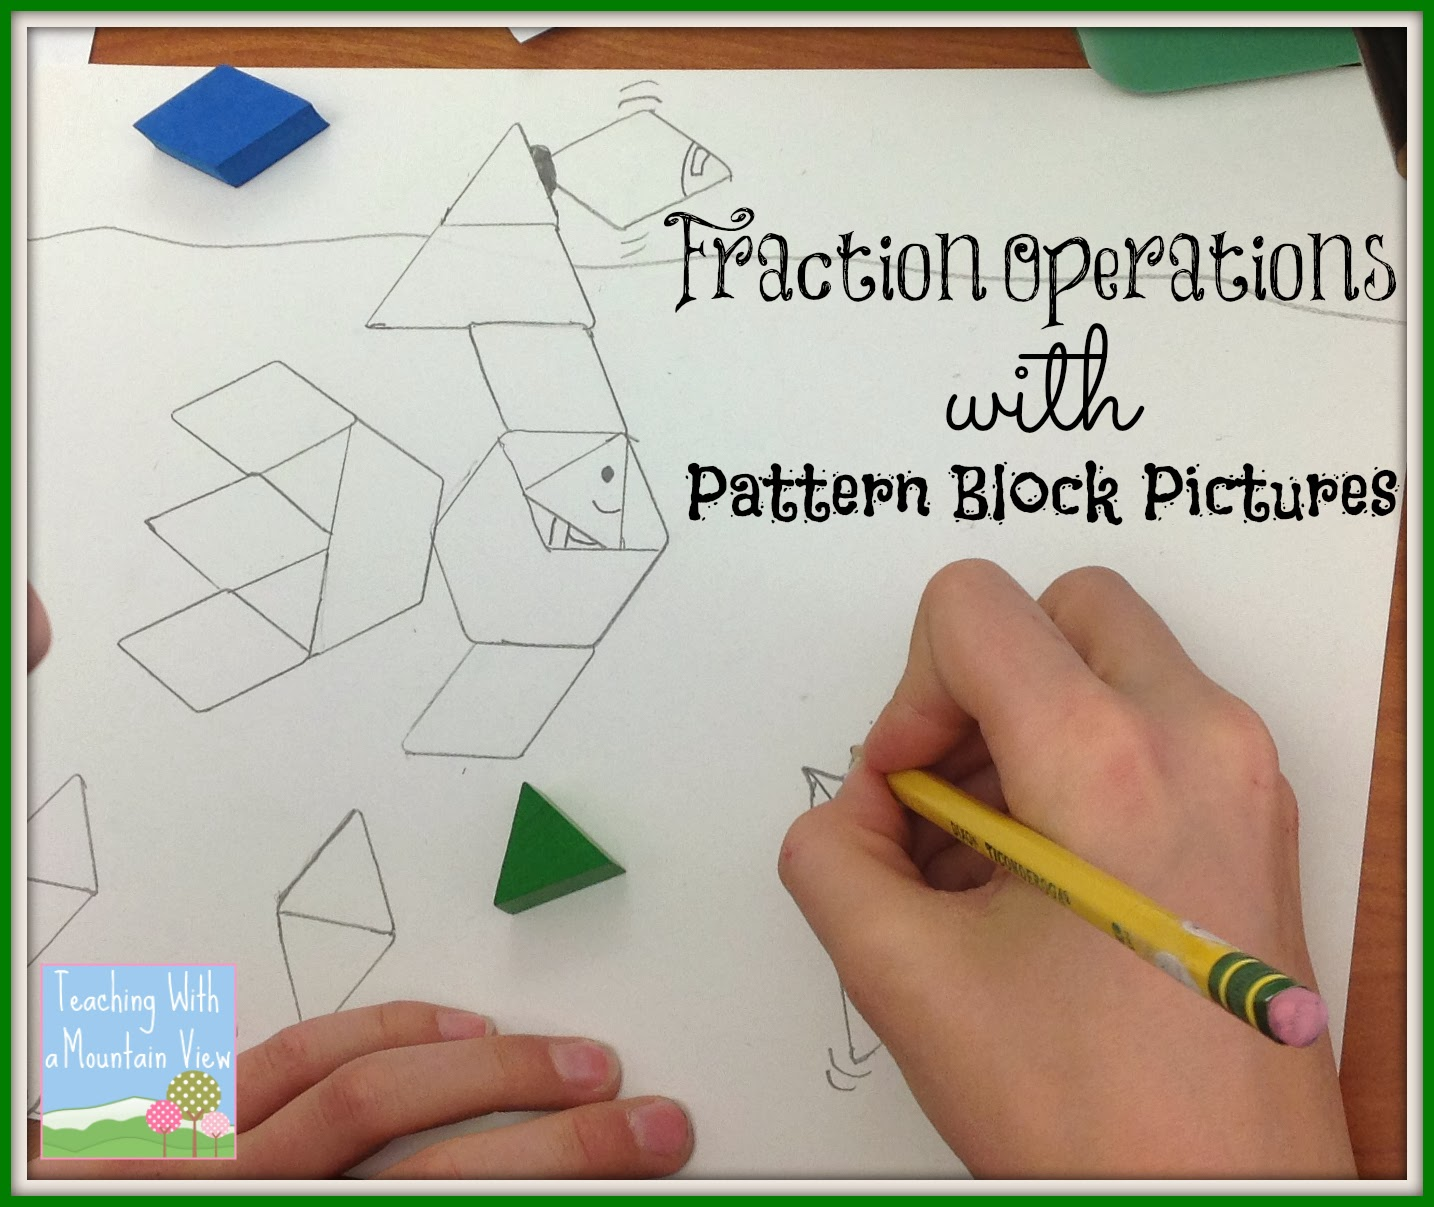 Teaching With a Mountain View Fraction Operation Review Project – Pattern Block Fractions Worksheet